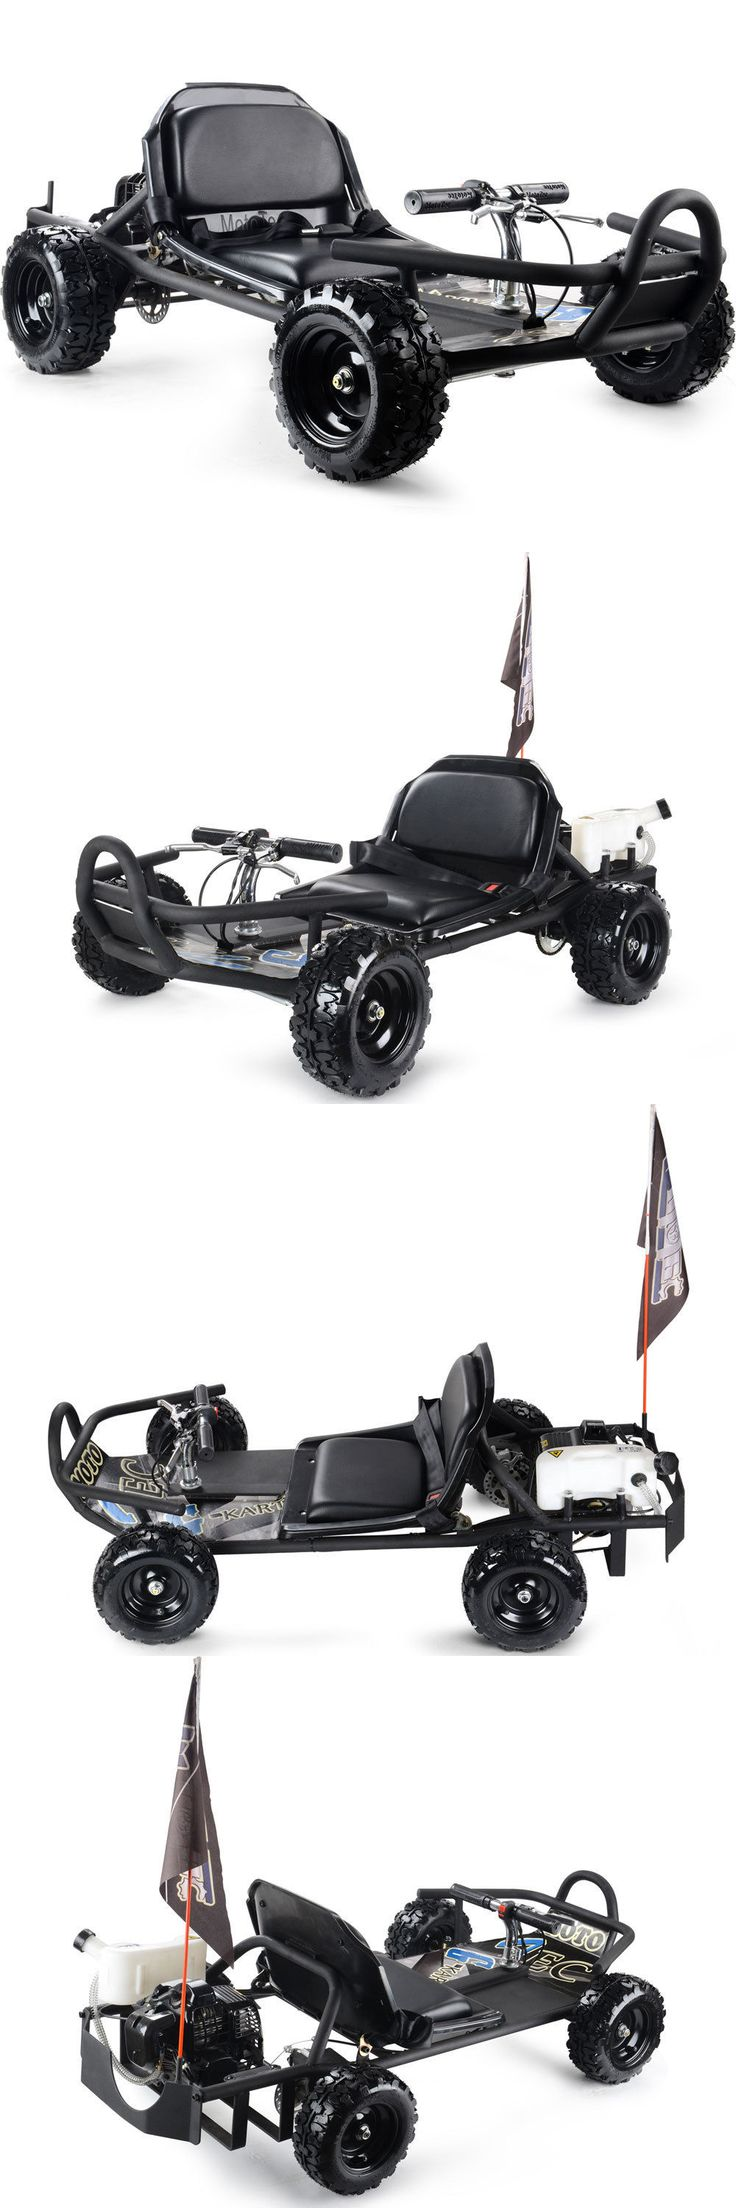 Complete Go-Karts and Frames 64656: Black 49Cc Gas Go Kart 2 Cycle Mototec Sandman Mt-Gk-10_Black 8In Knobby Tires BUY IT NOW ONLY: $629.0